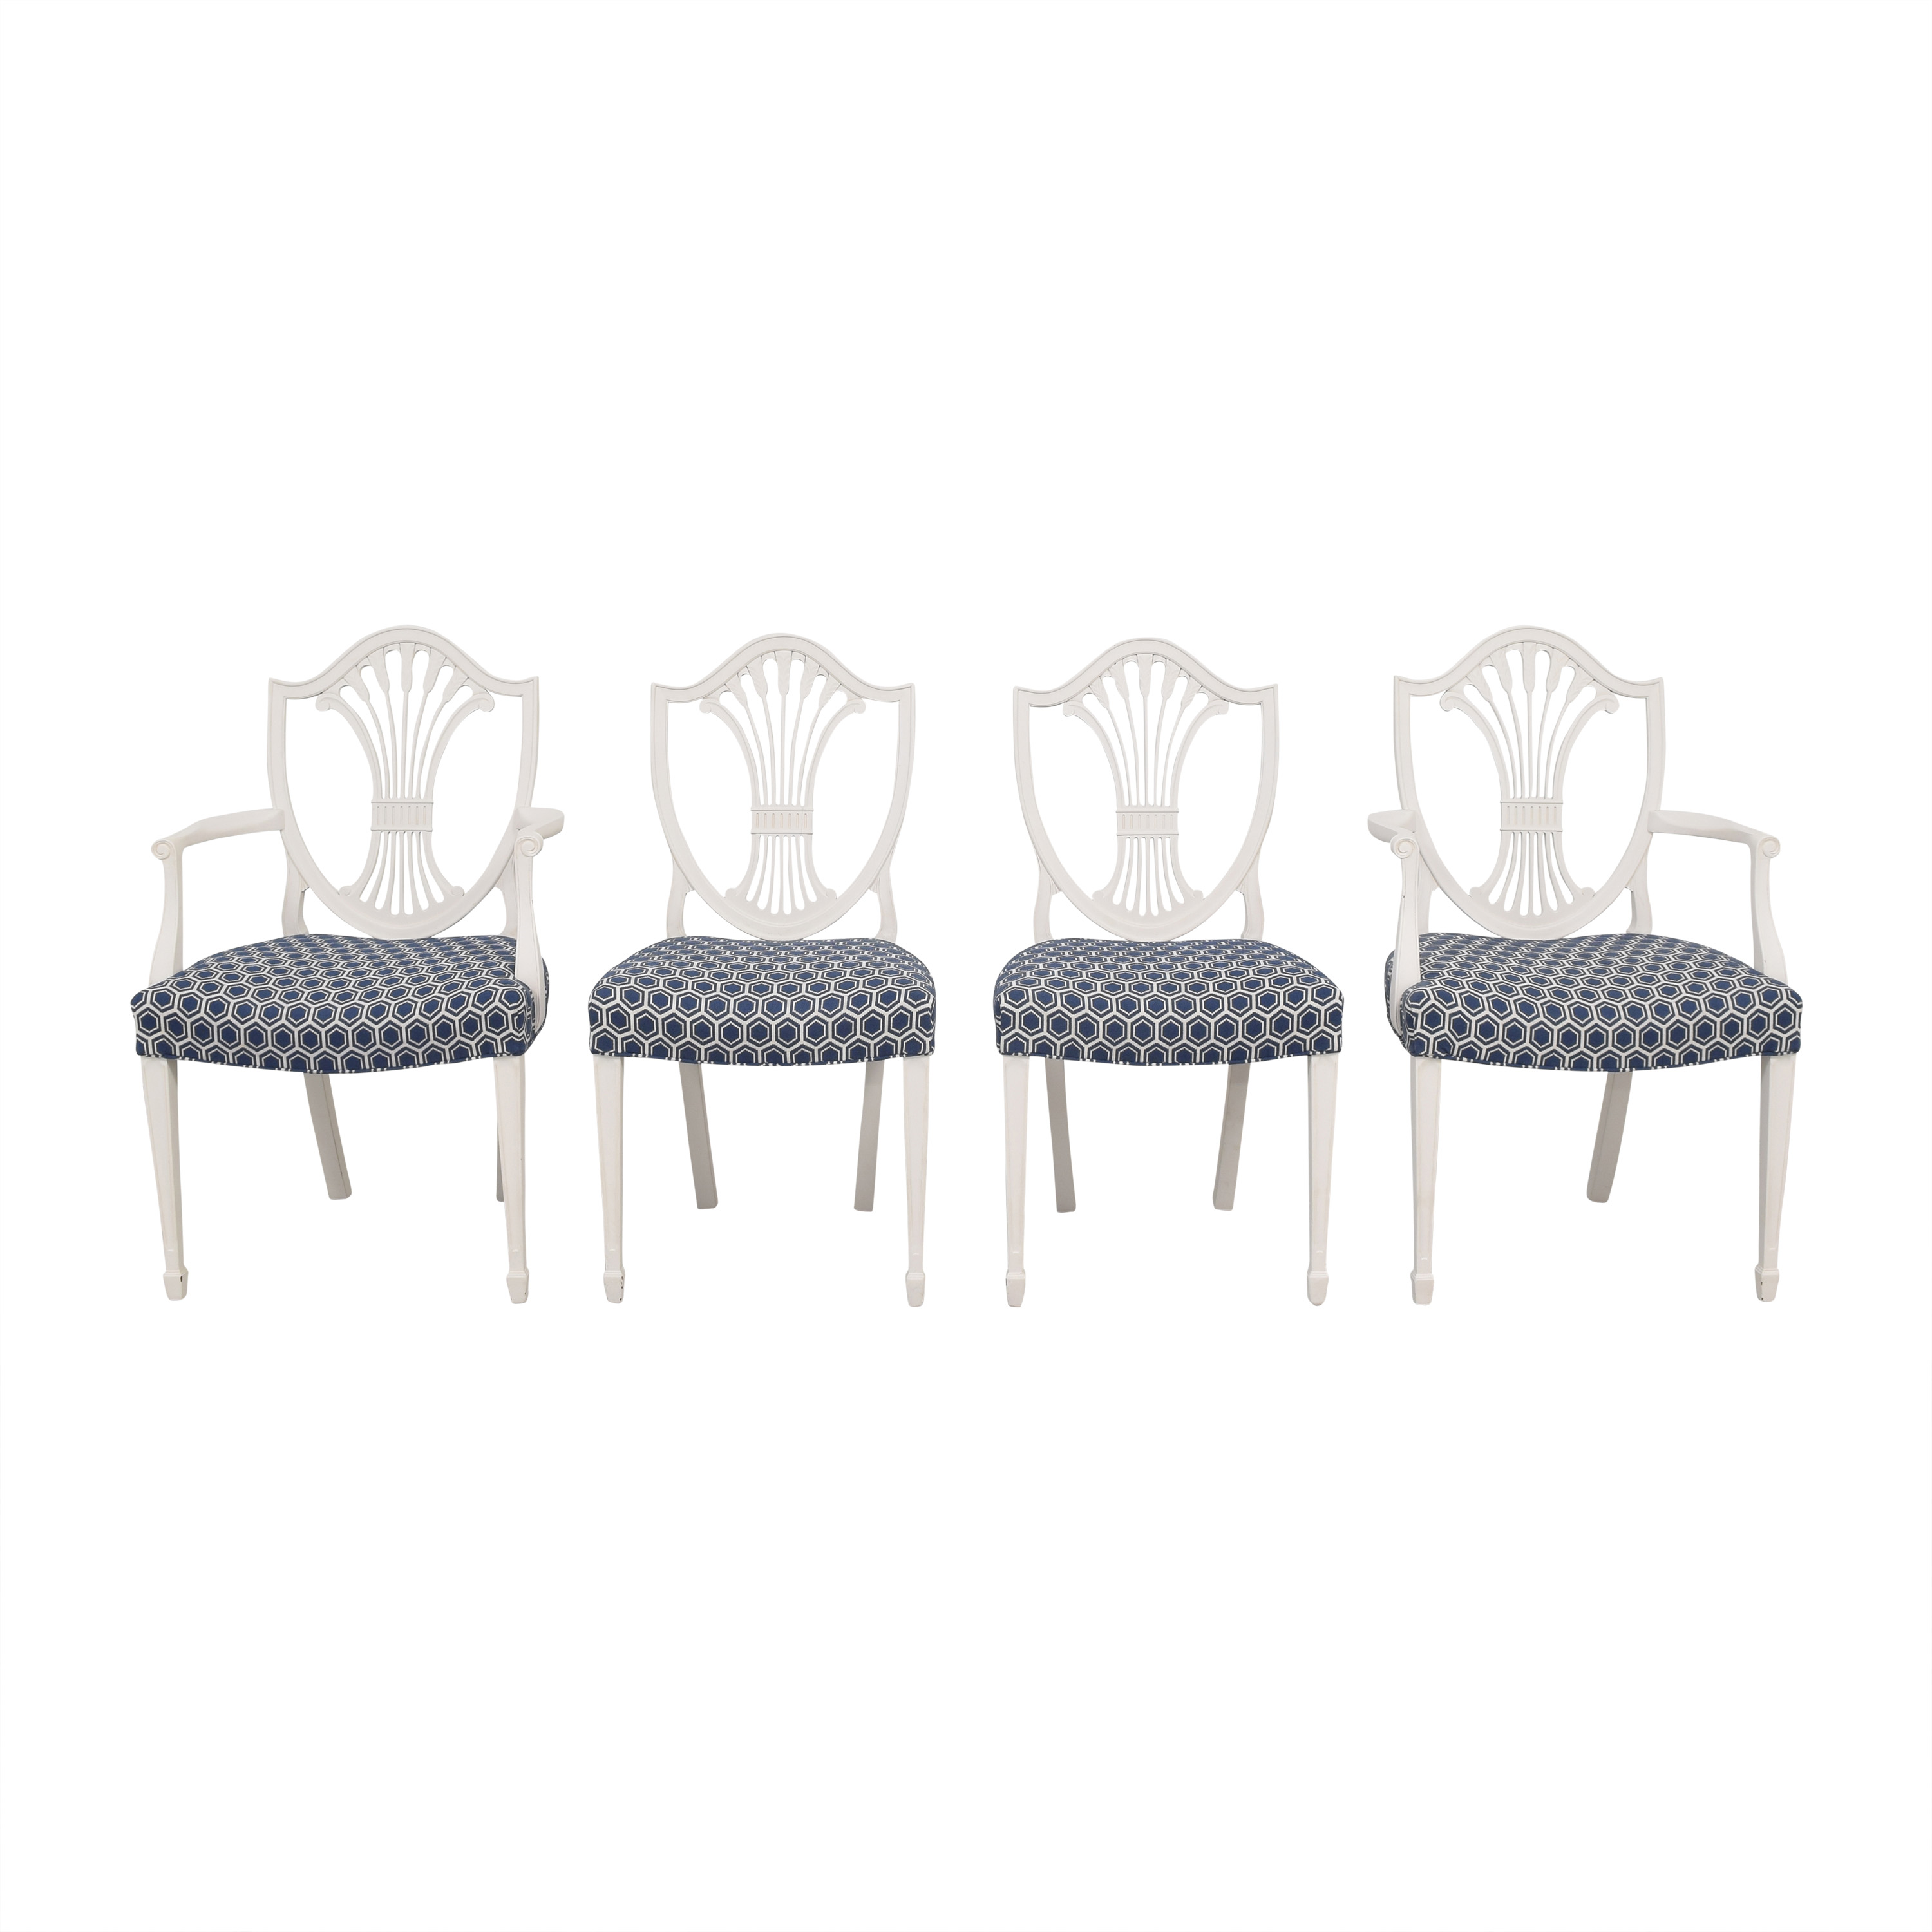 Refurbished Antique Wheat Back Dining Chairs white & blue